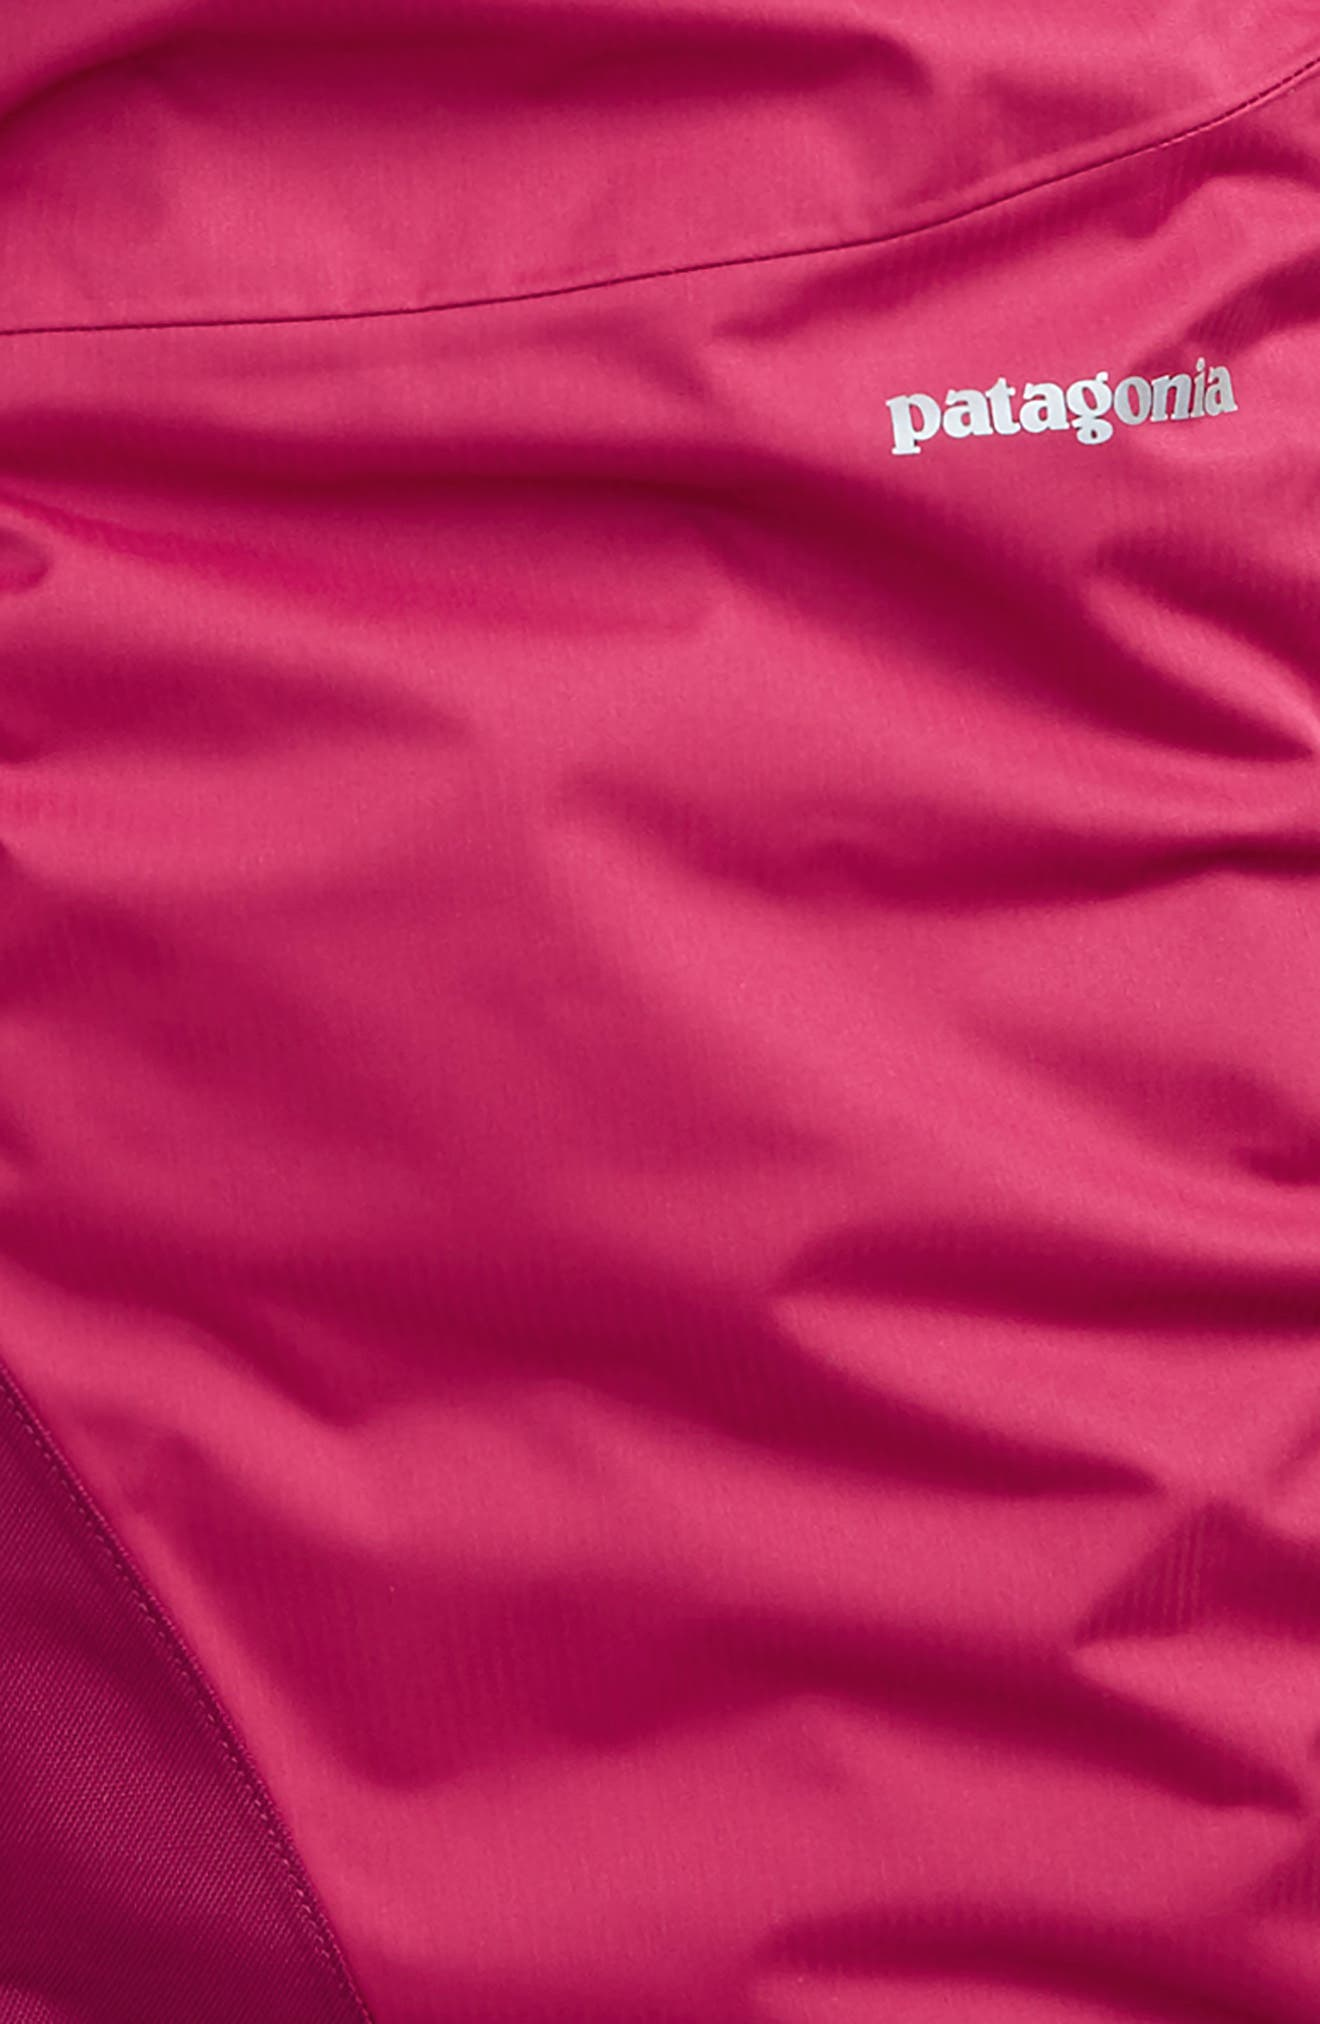 Alternate Image 2  - Patagonia Snowbelle Insulated Snow Pants (Little Girls & Big Girls)